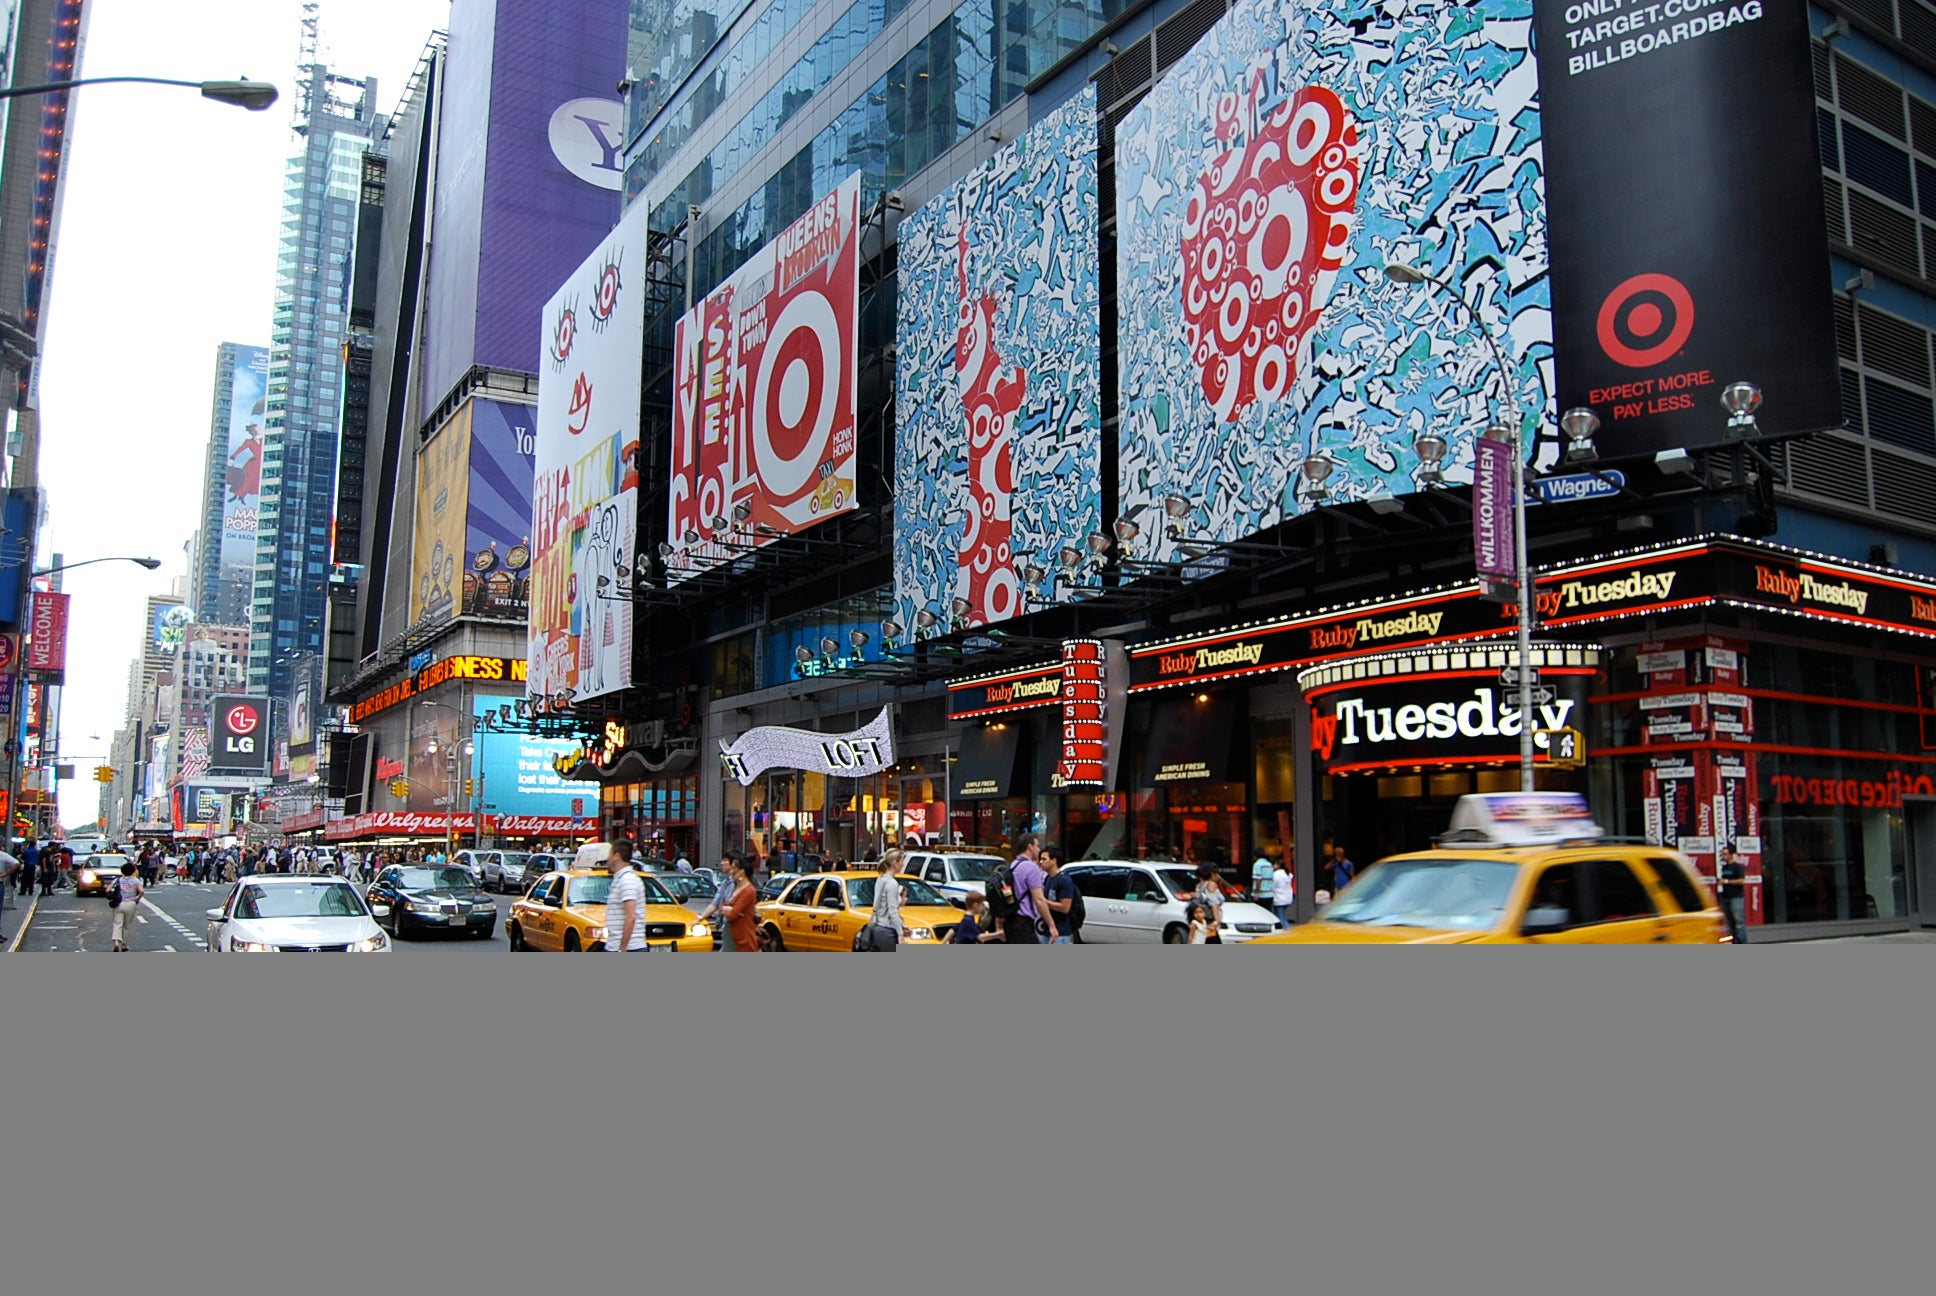 Target Billboards at Times Square